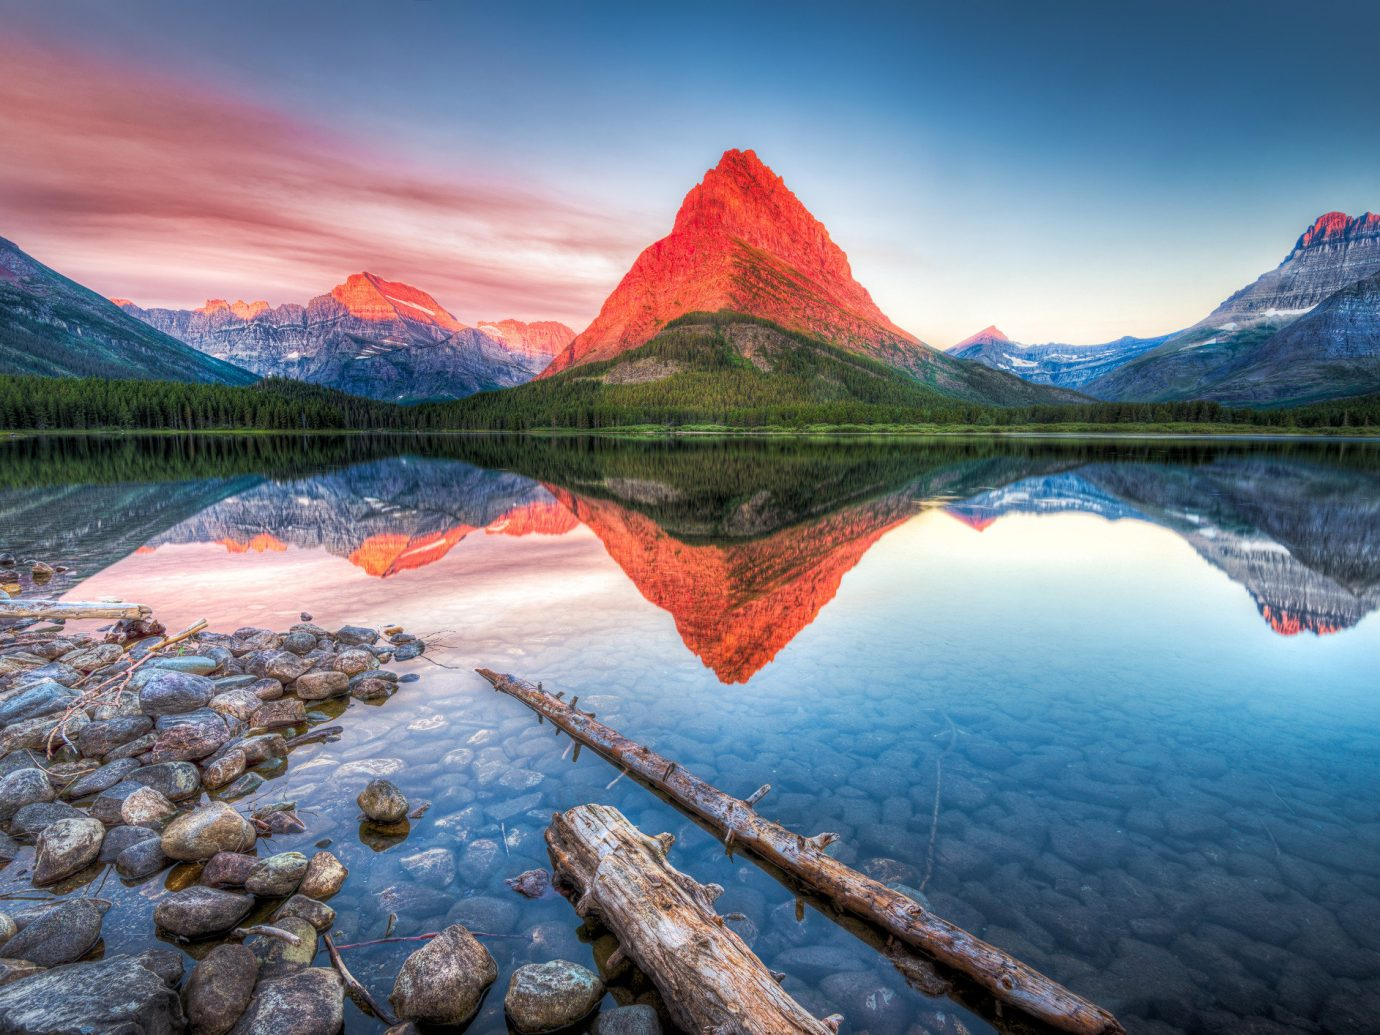 National Parks Outdoors + Adventure Trip Ideas sky water mountainous landforms outdoor Nature mountain reflection landform wilderness mountain range Sea Lake morning sunrise leaf landscape dawn fjord autumn computer wallpaper colorful colored